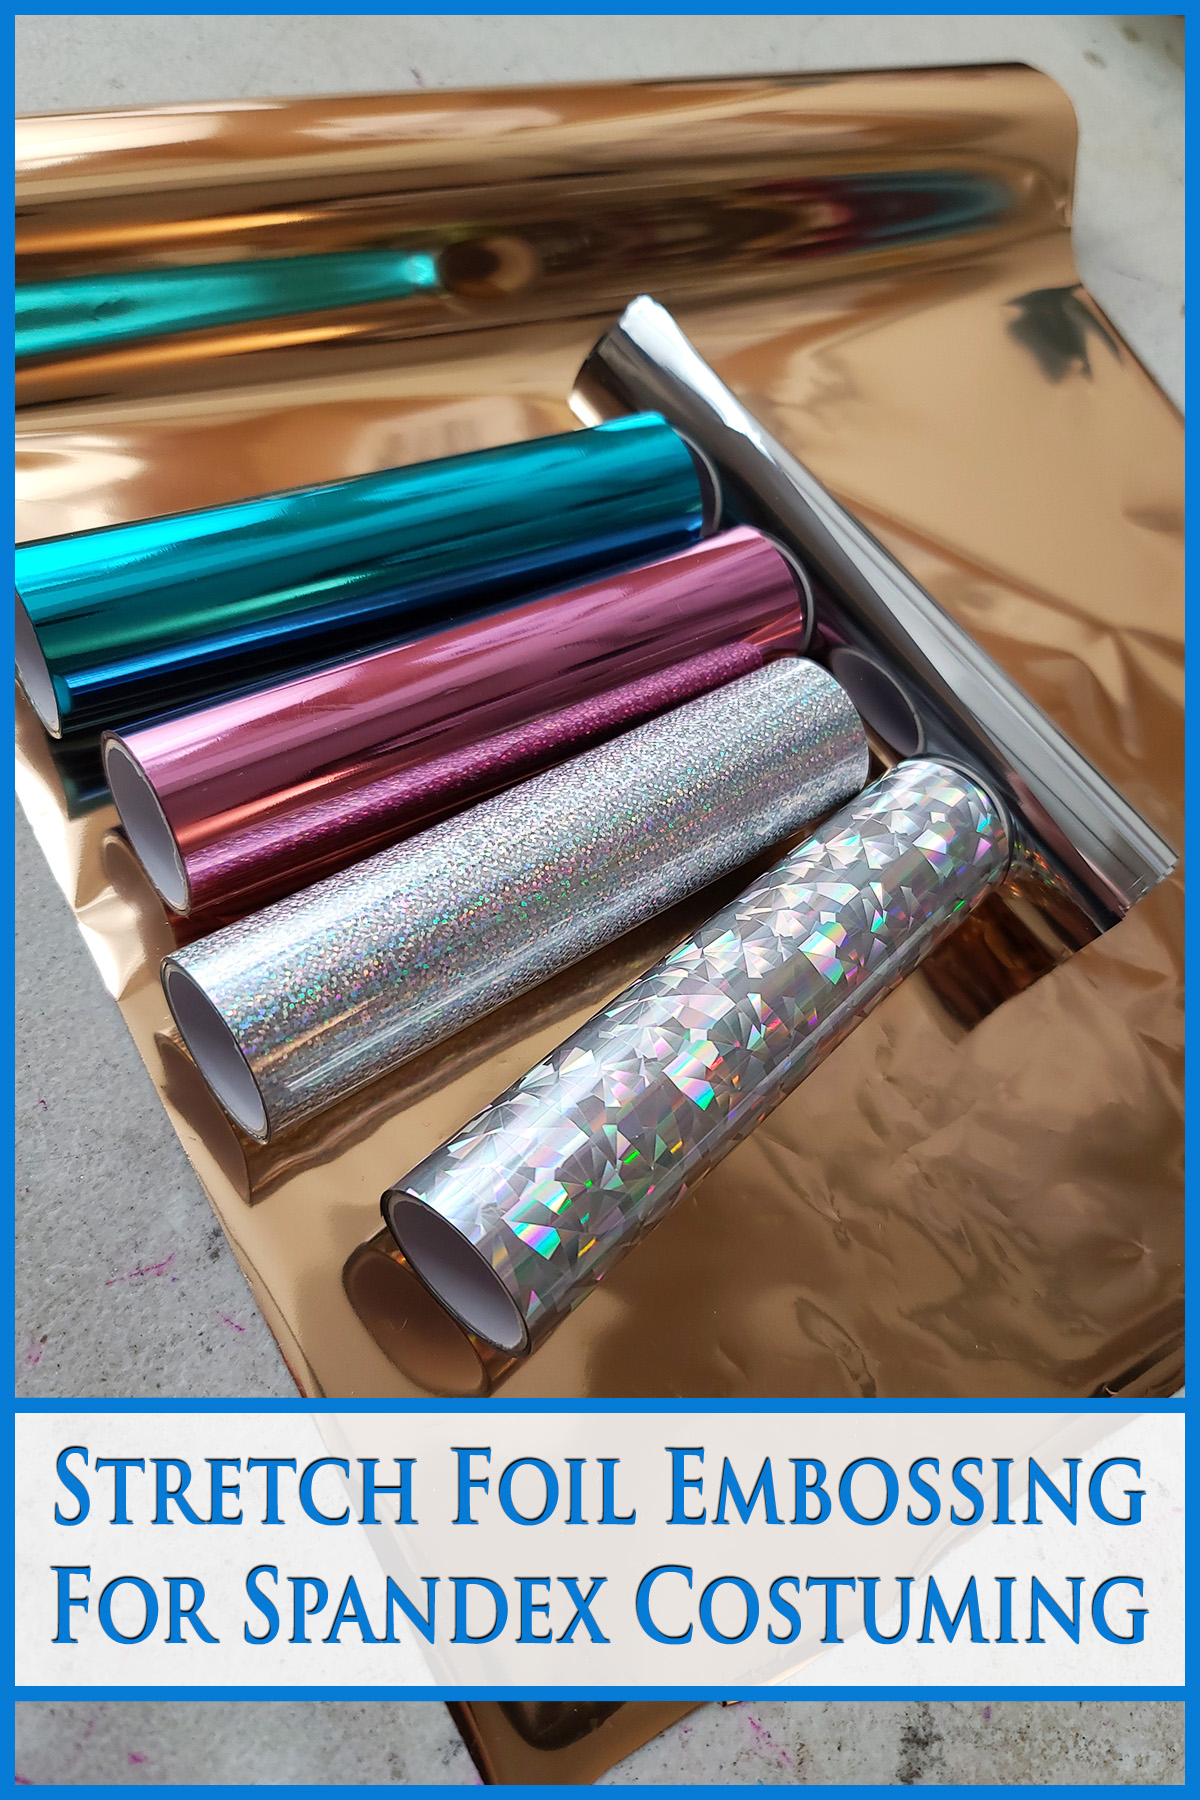 5 rolls of various colours of foil transfer paper laid out on a sheet of copper coloured foil. Blue text says Stretch Foil Embossing for Spandex Costuming.